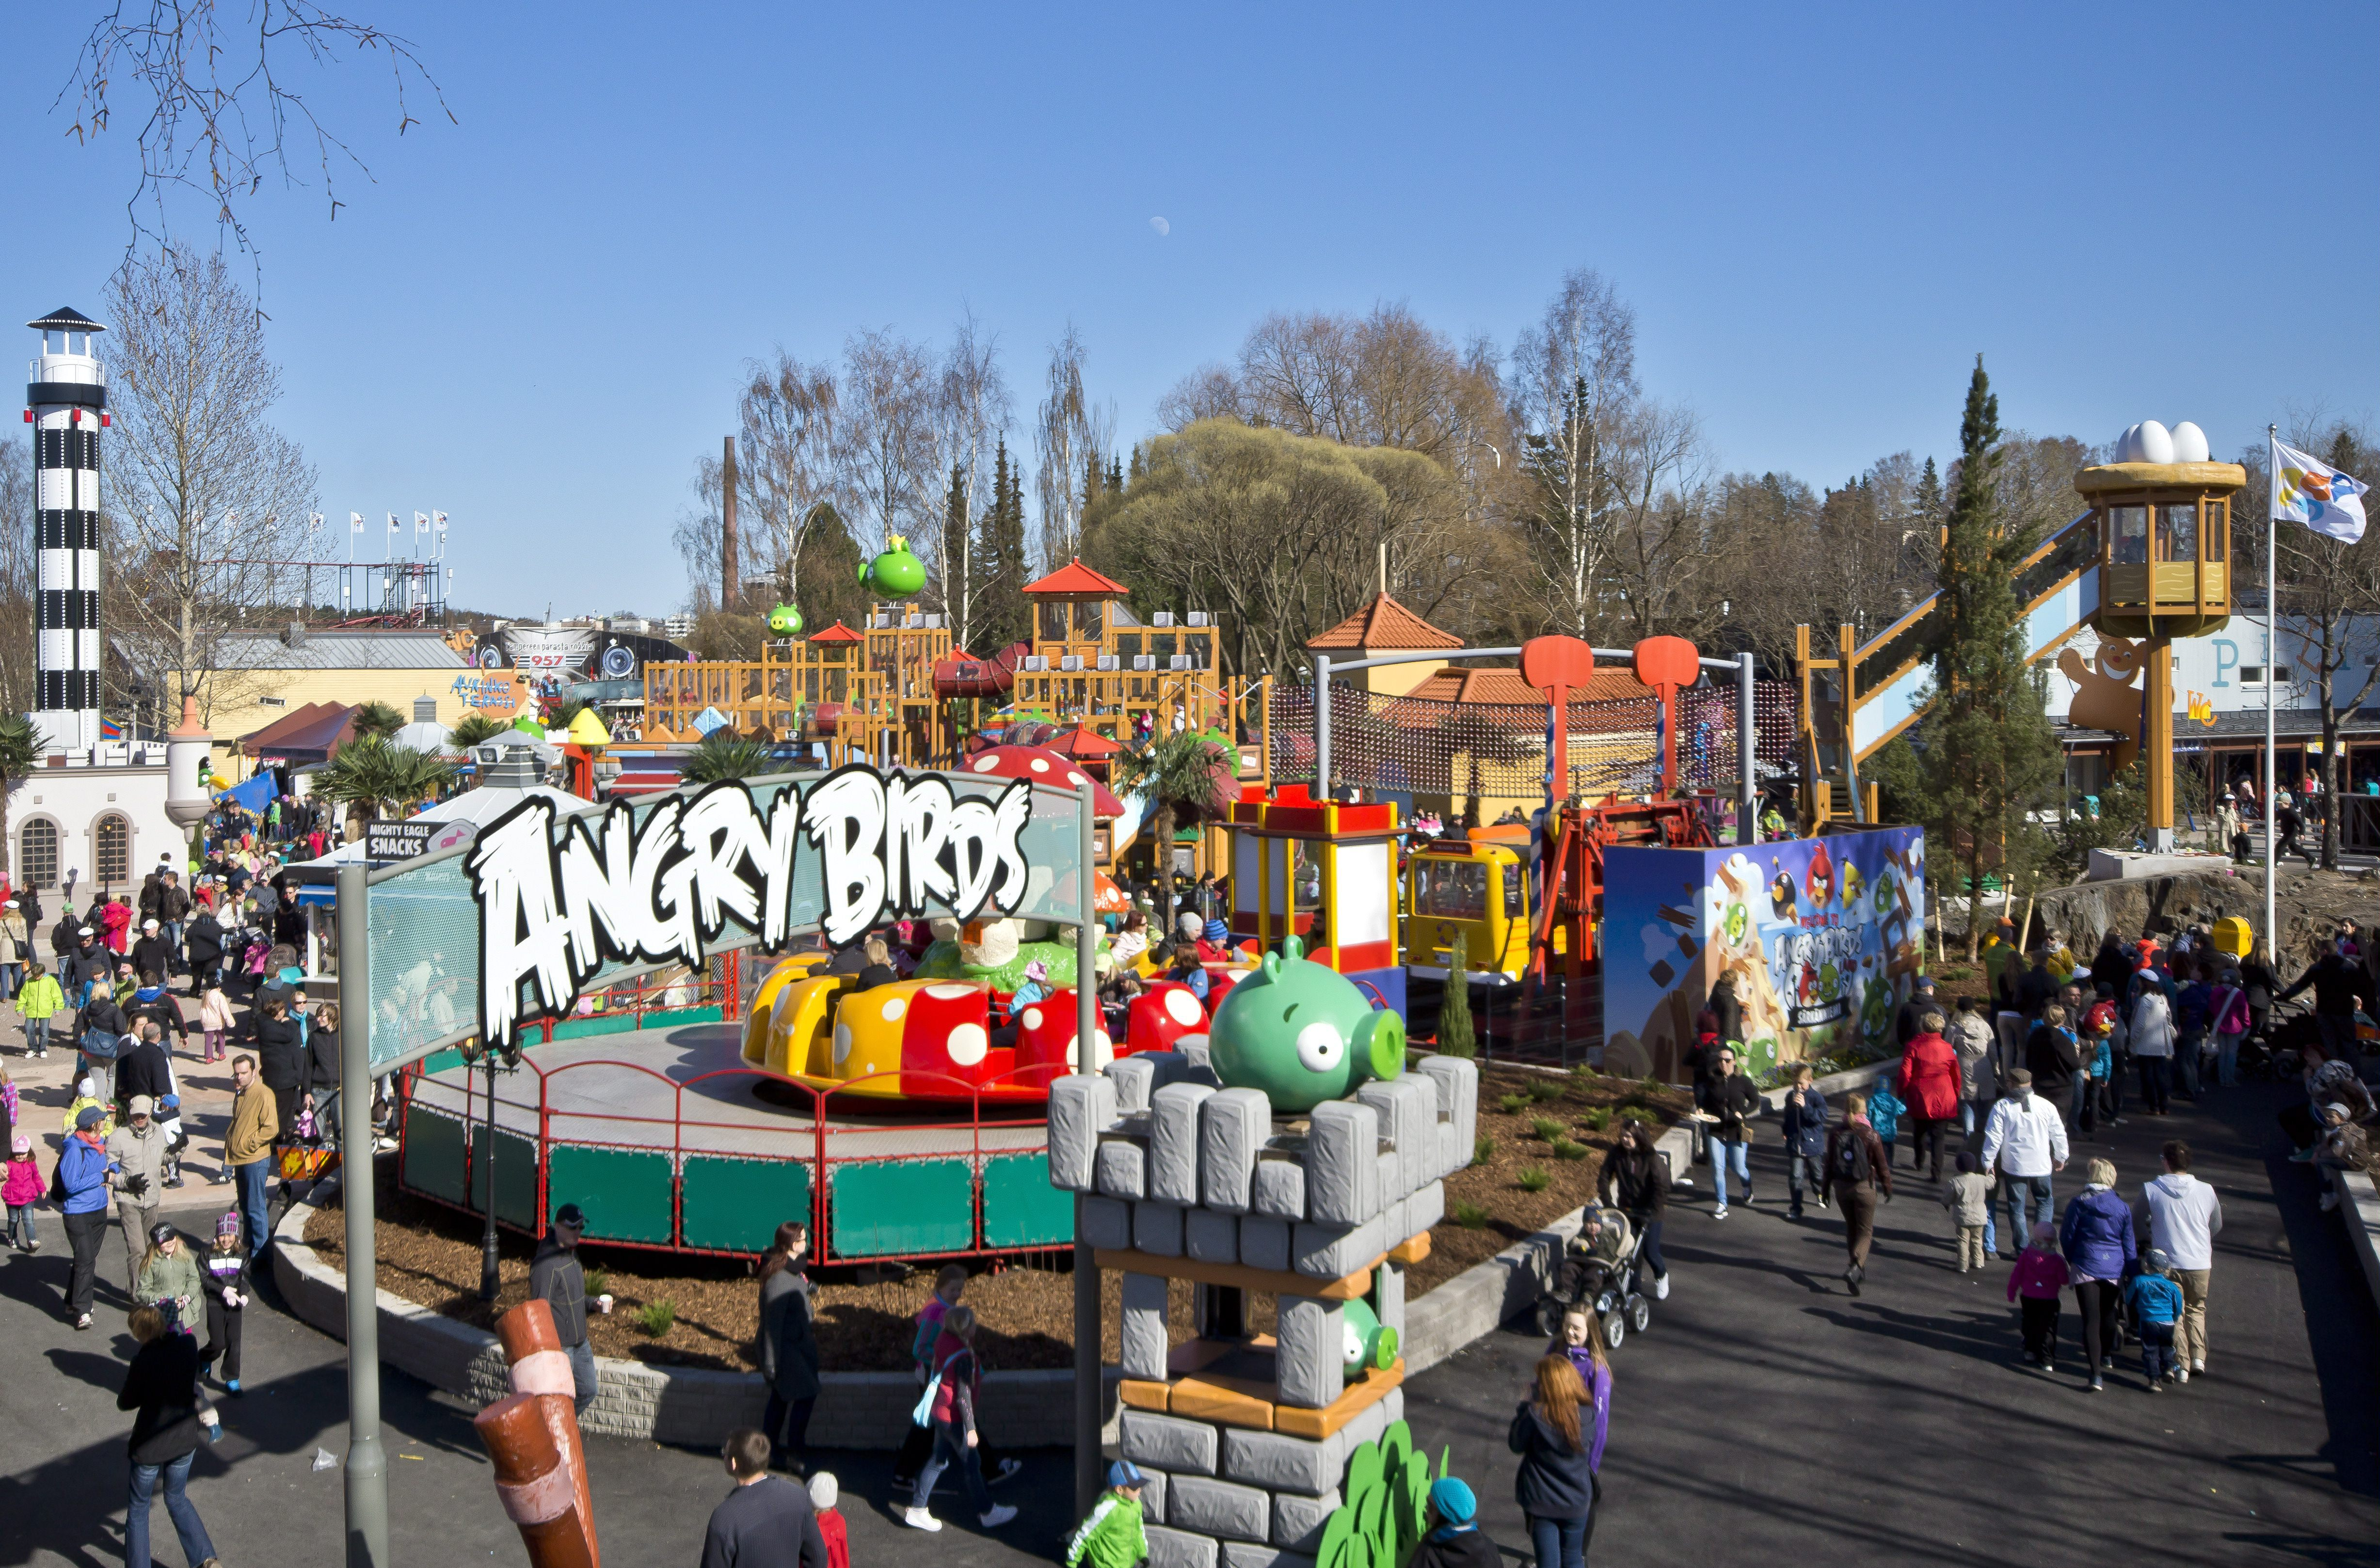 Angry Birds Land, the new part of the Sarkanniemi amusement park in Tampere, seen on May 1, 2012. At Rovio, the future is Angry. The Finnish gaming company that made the eponymous Angry Birds title _ with more than 1 billion downloads to date _ is now spreading its wings beyond the virtual world. It has already launched plush toys, lunch boxes, clothing, stationery, food and drink items, a Formula 1 driver sponsorship deal and a jewelry line with the Angry Birds theme. Rovio this week announced it would launch an Angry Birds-branded debit card in Russia in partnership with a local bank. Next up: Angry Birds Land, one of the highlights of a theme park opening next month in the Finnish city of Tampere.